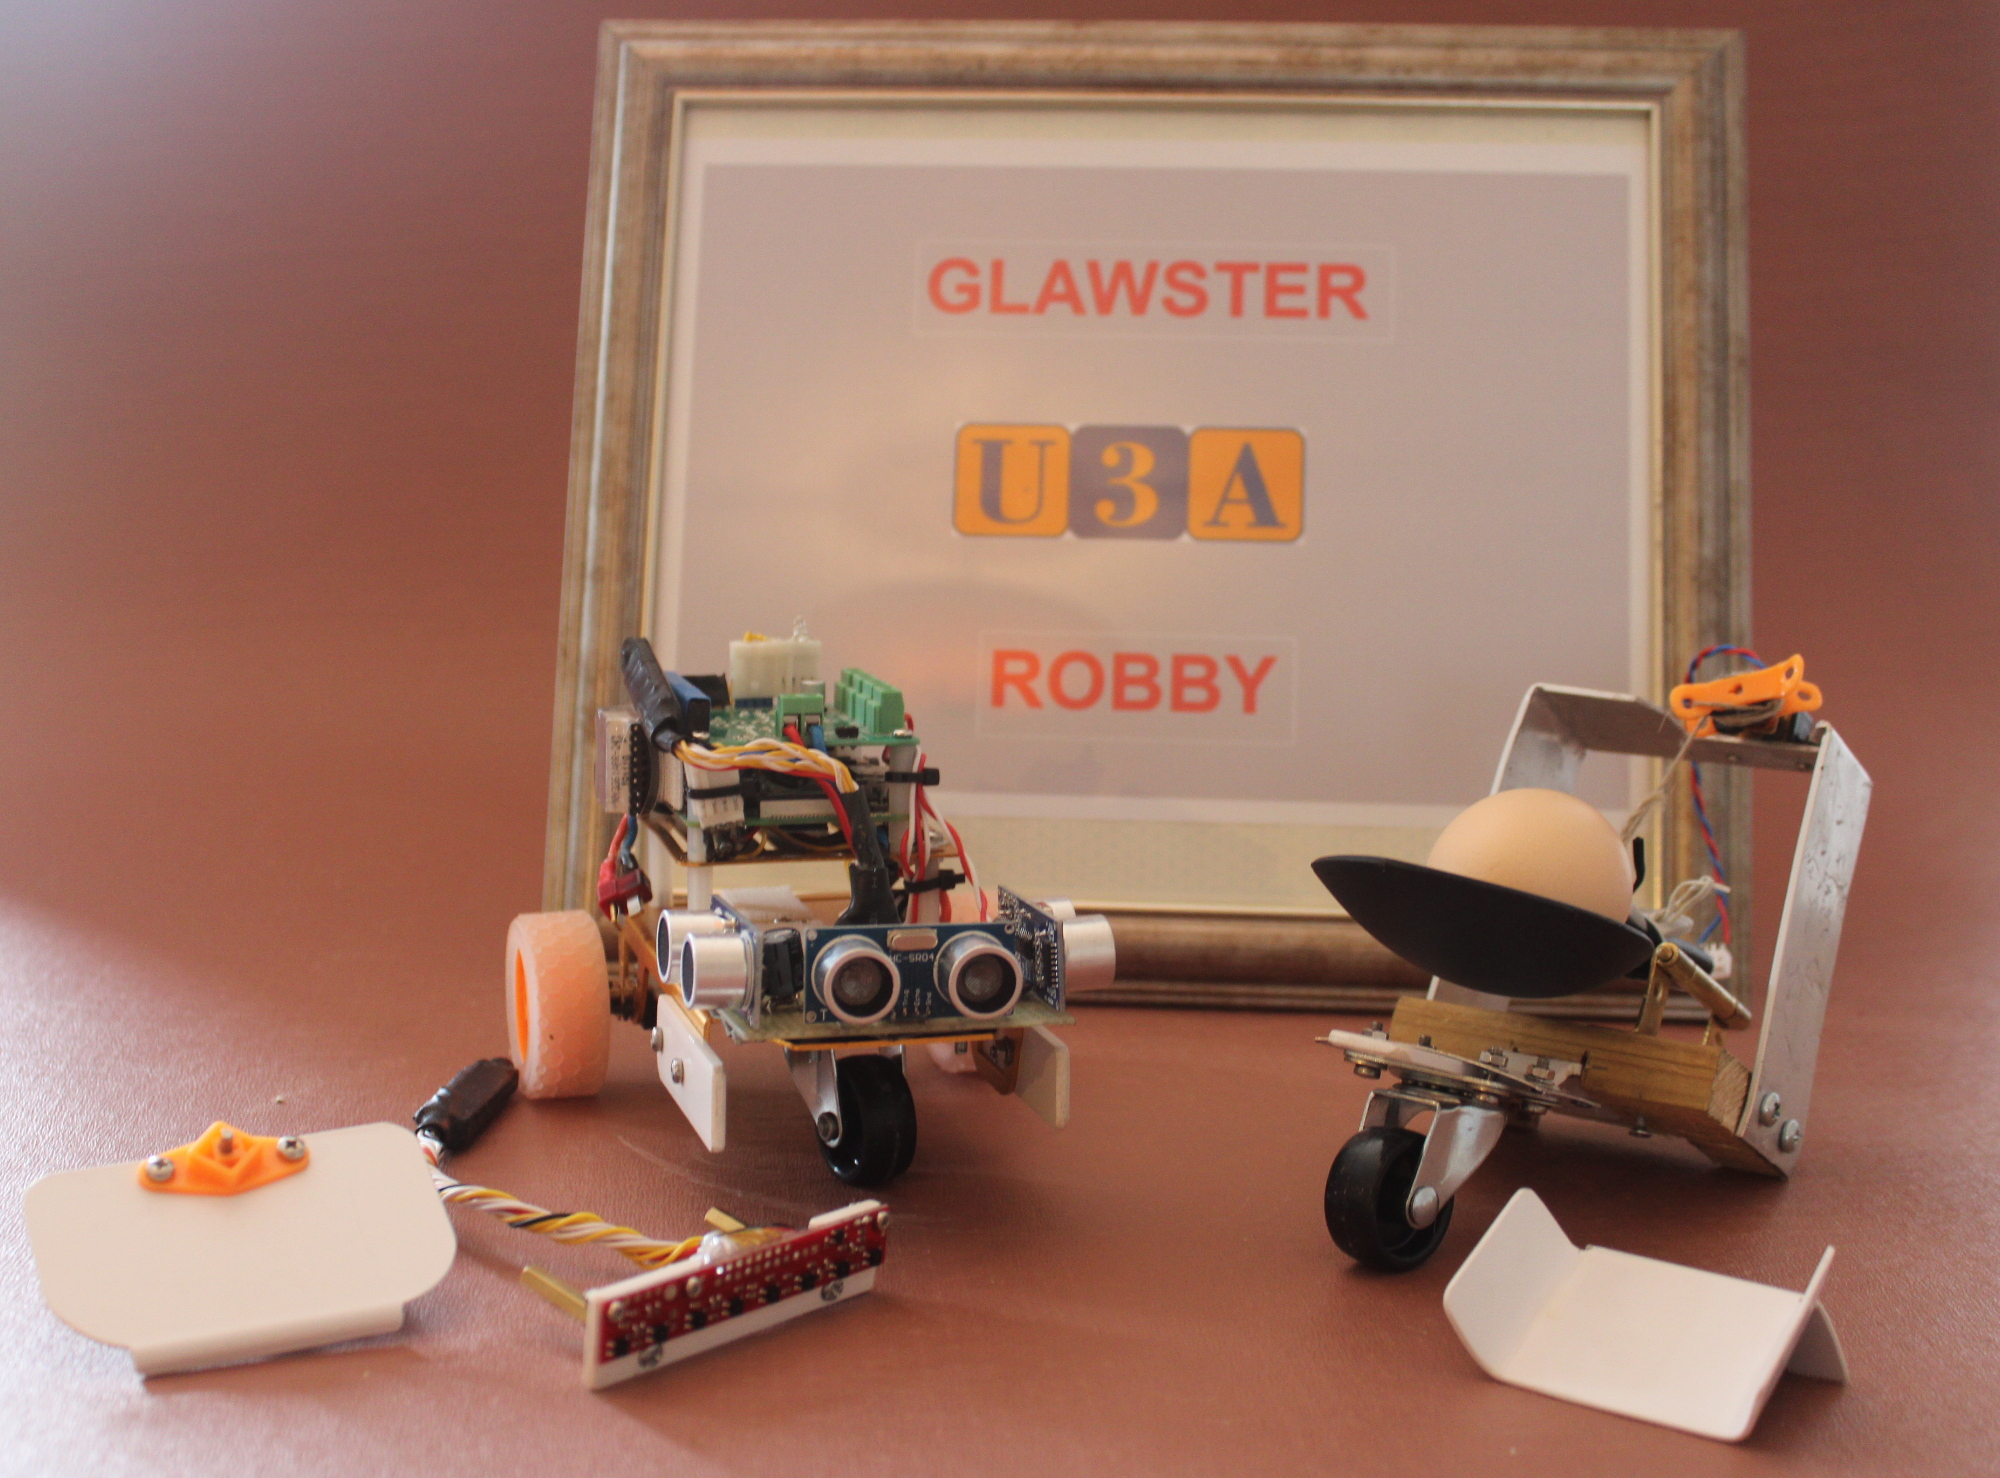 Our competitor - Glawster Robby.